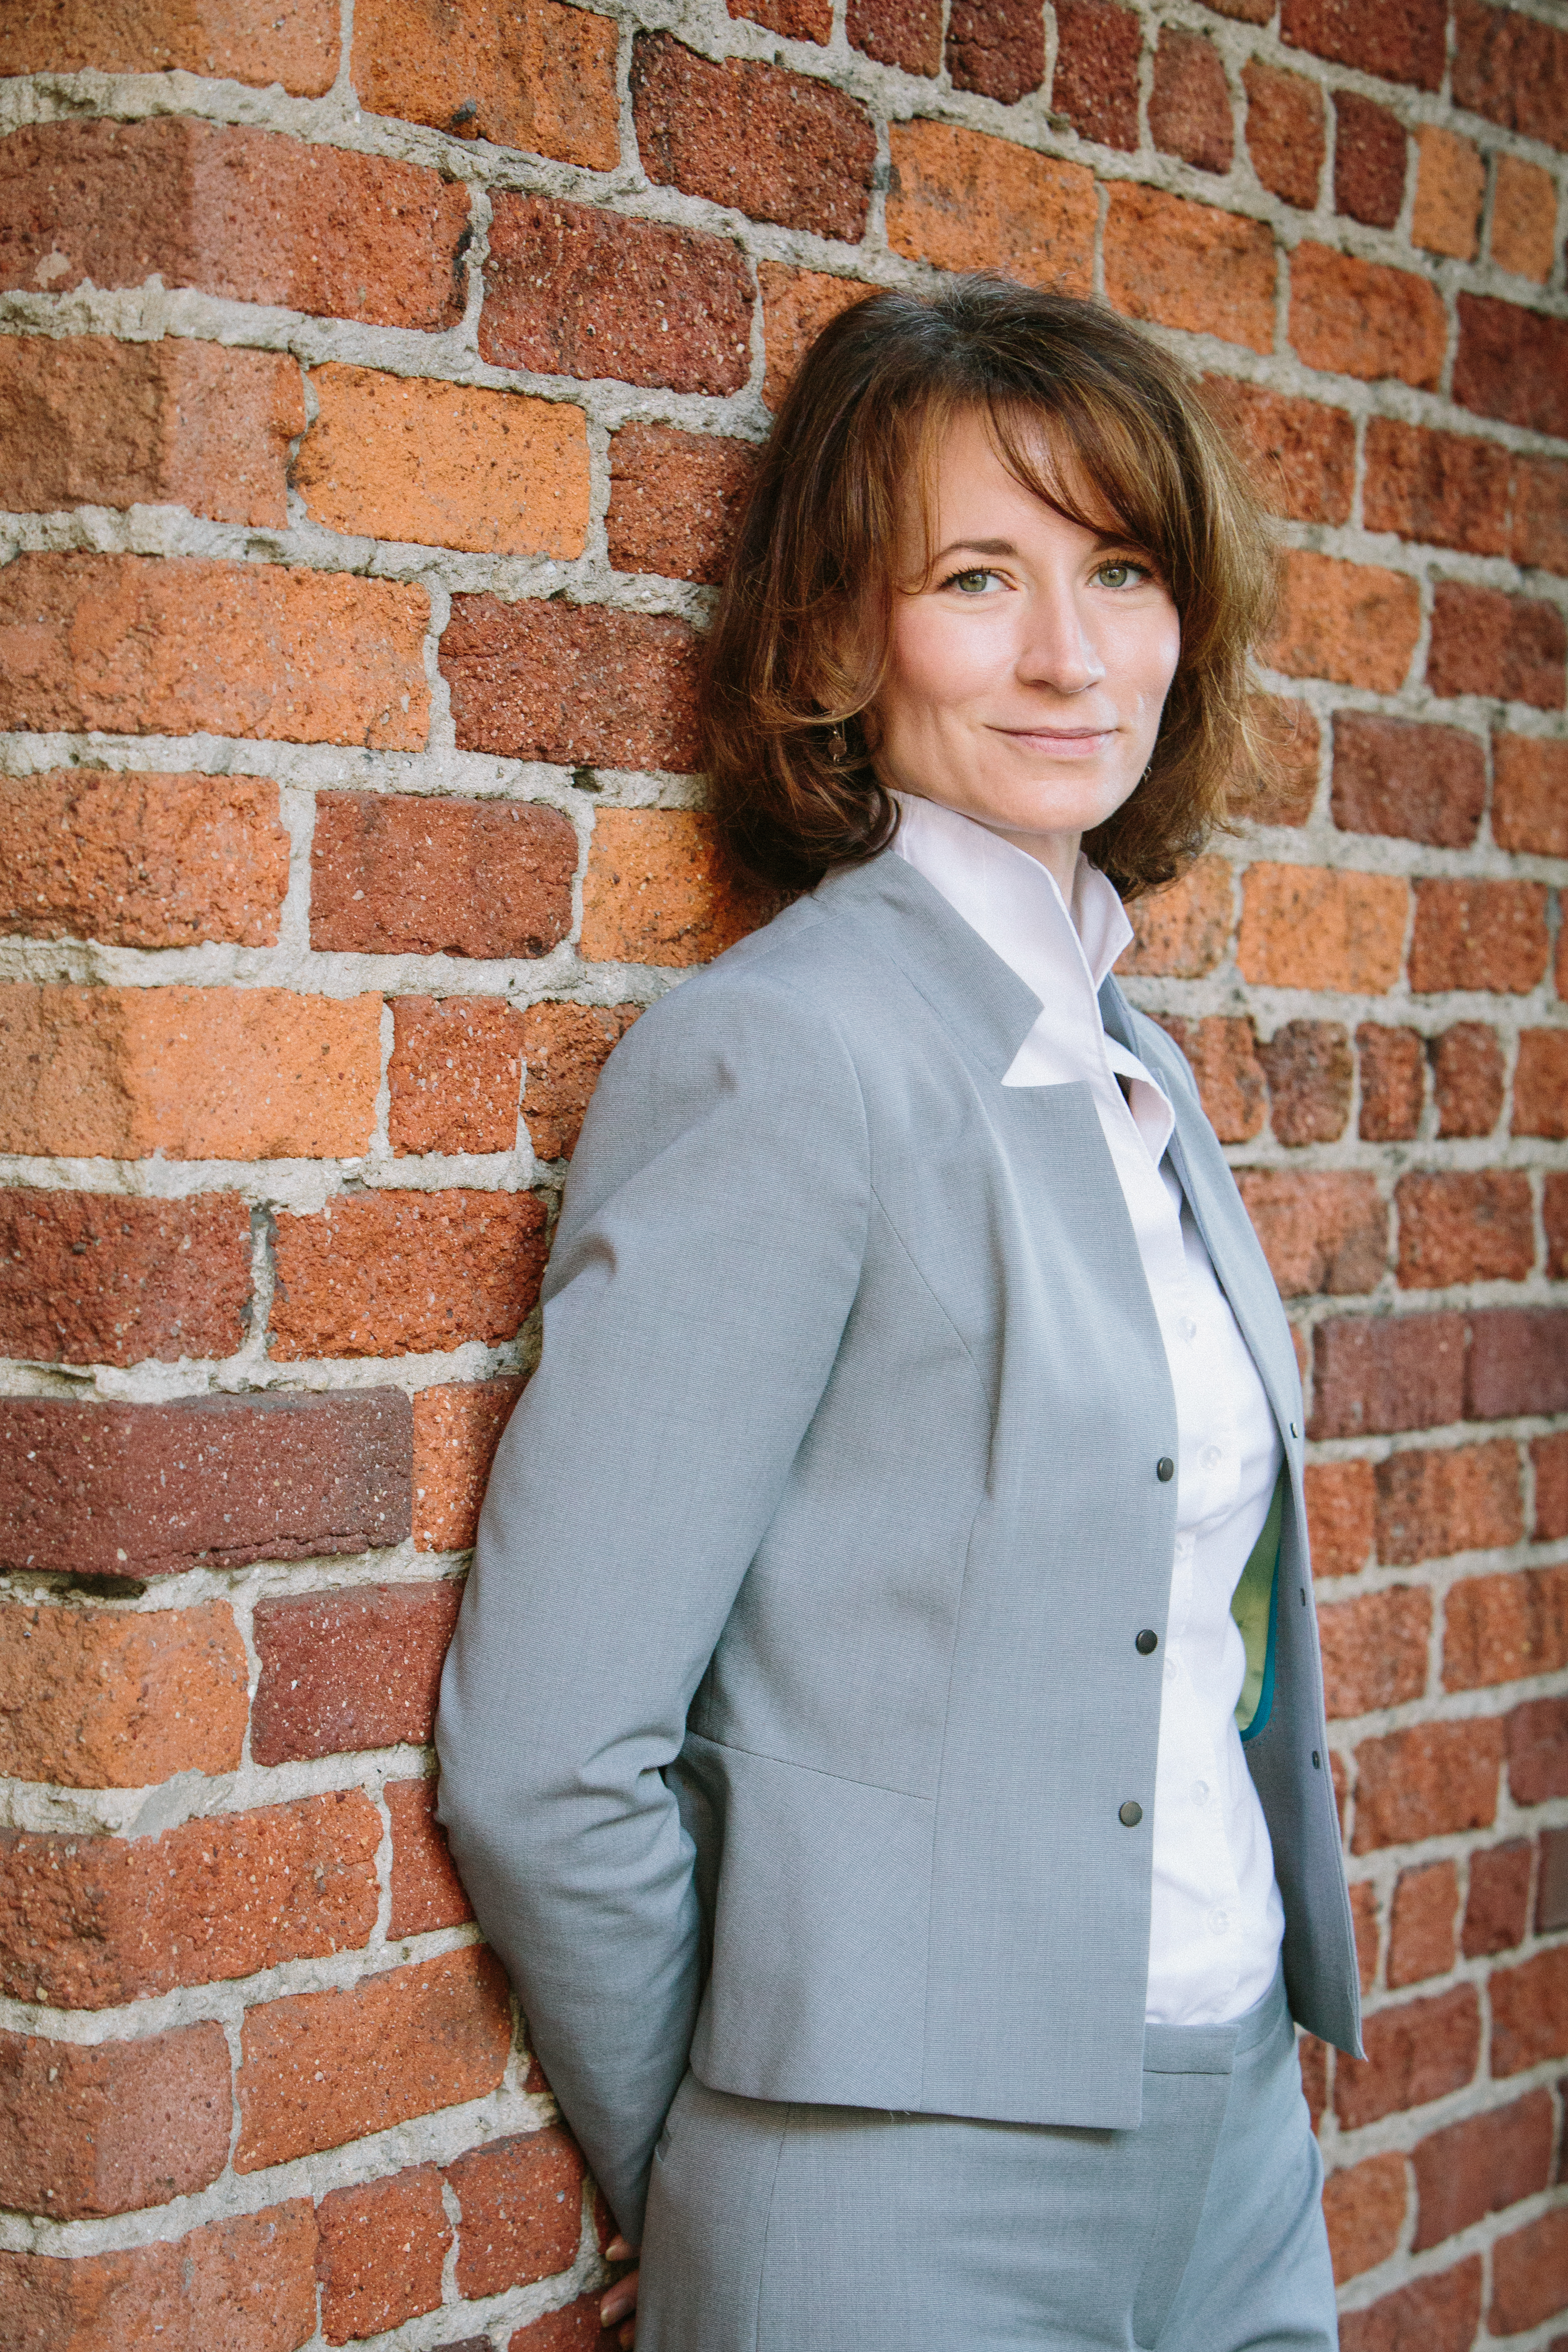 Pam Kostka, the new CEO of All Raise, standing in front of a brick wall.